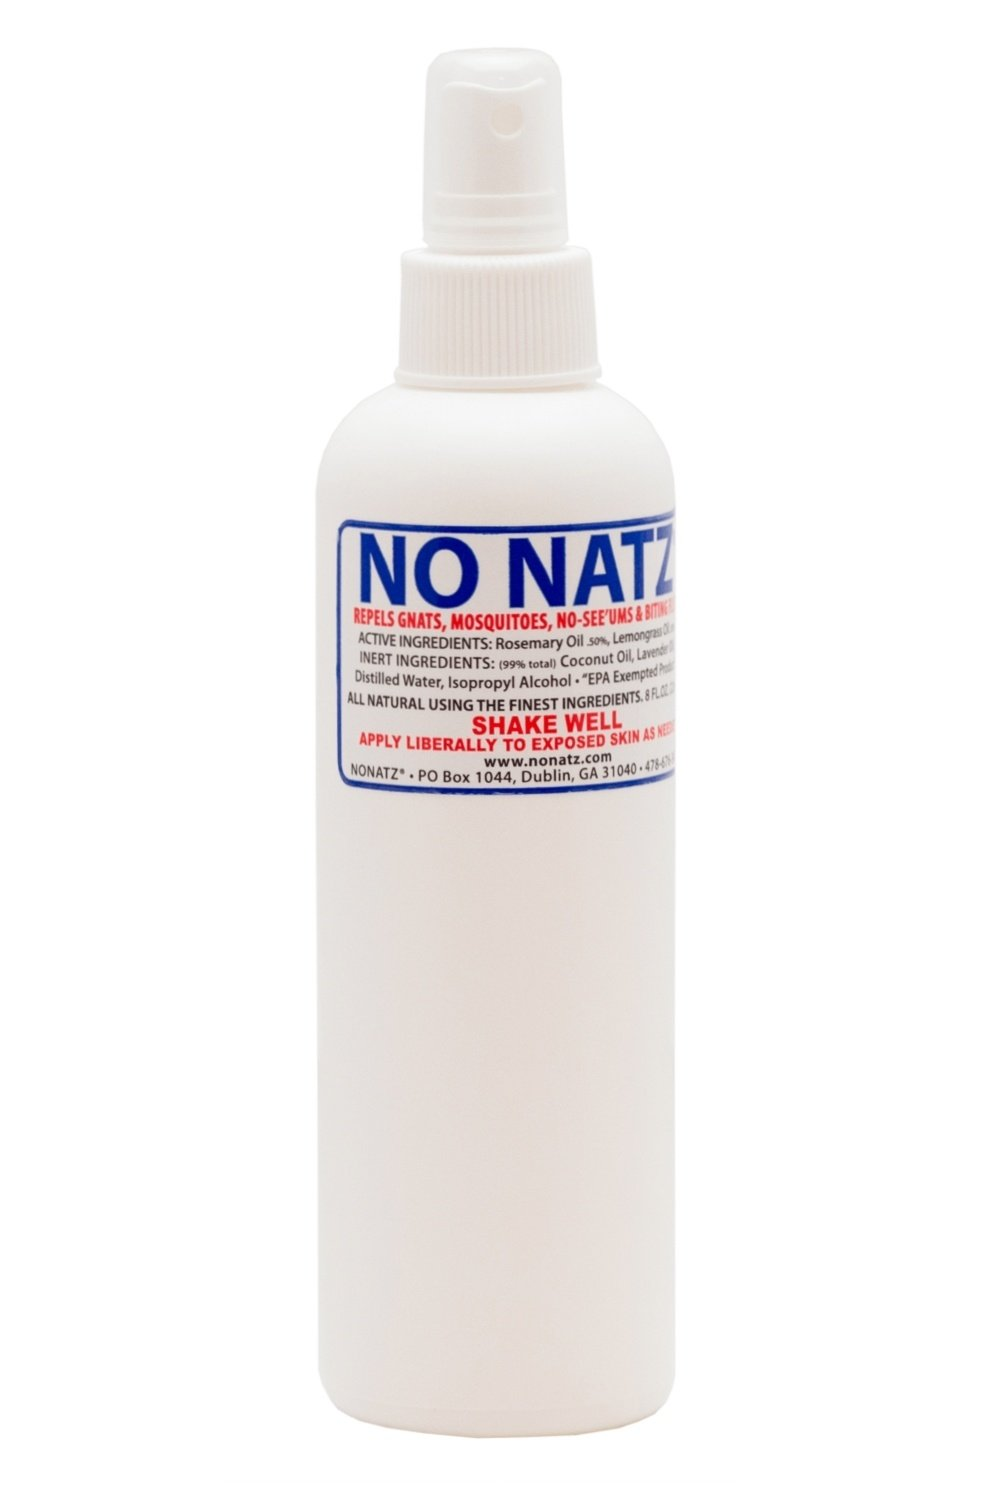 No Natz Insect and Bug Protection, 8oz Spray, All-Natural and Deet-Free, Hypo-Allergenic and Safe for Pets